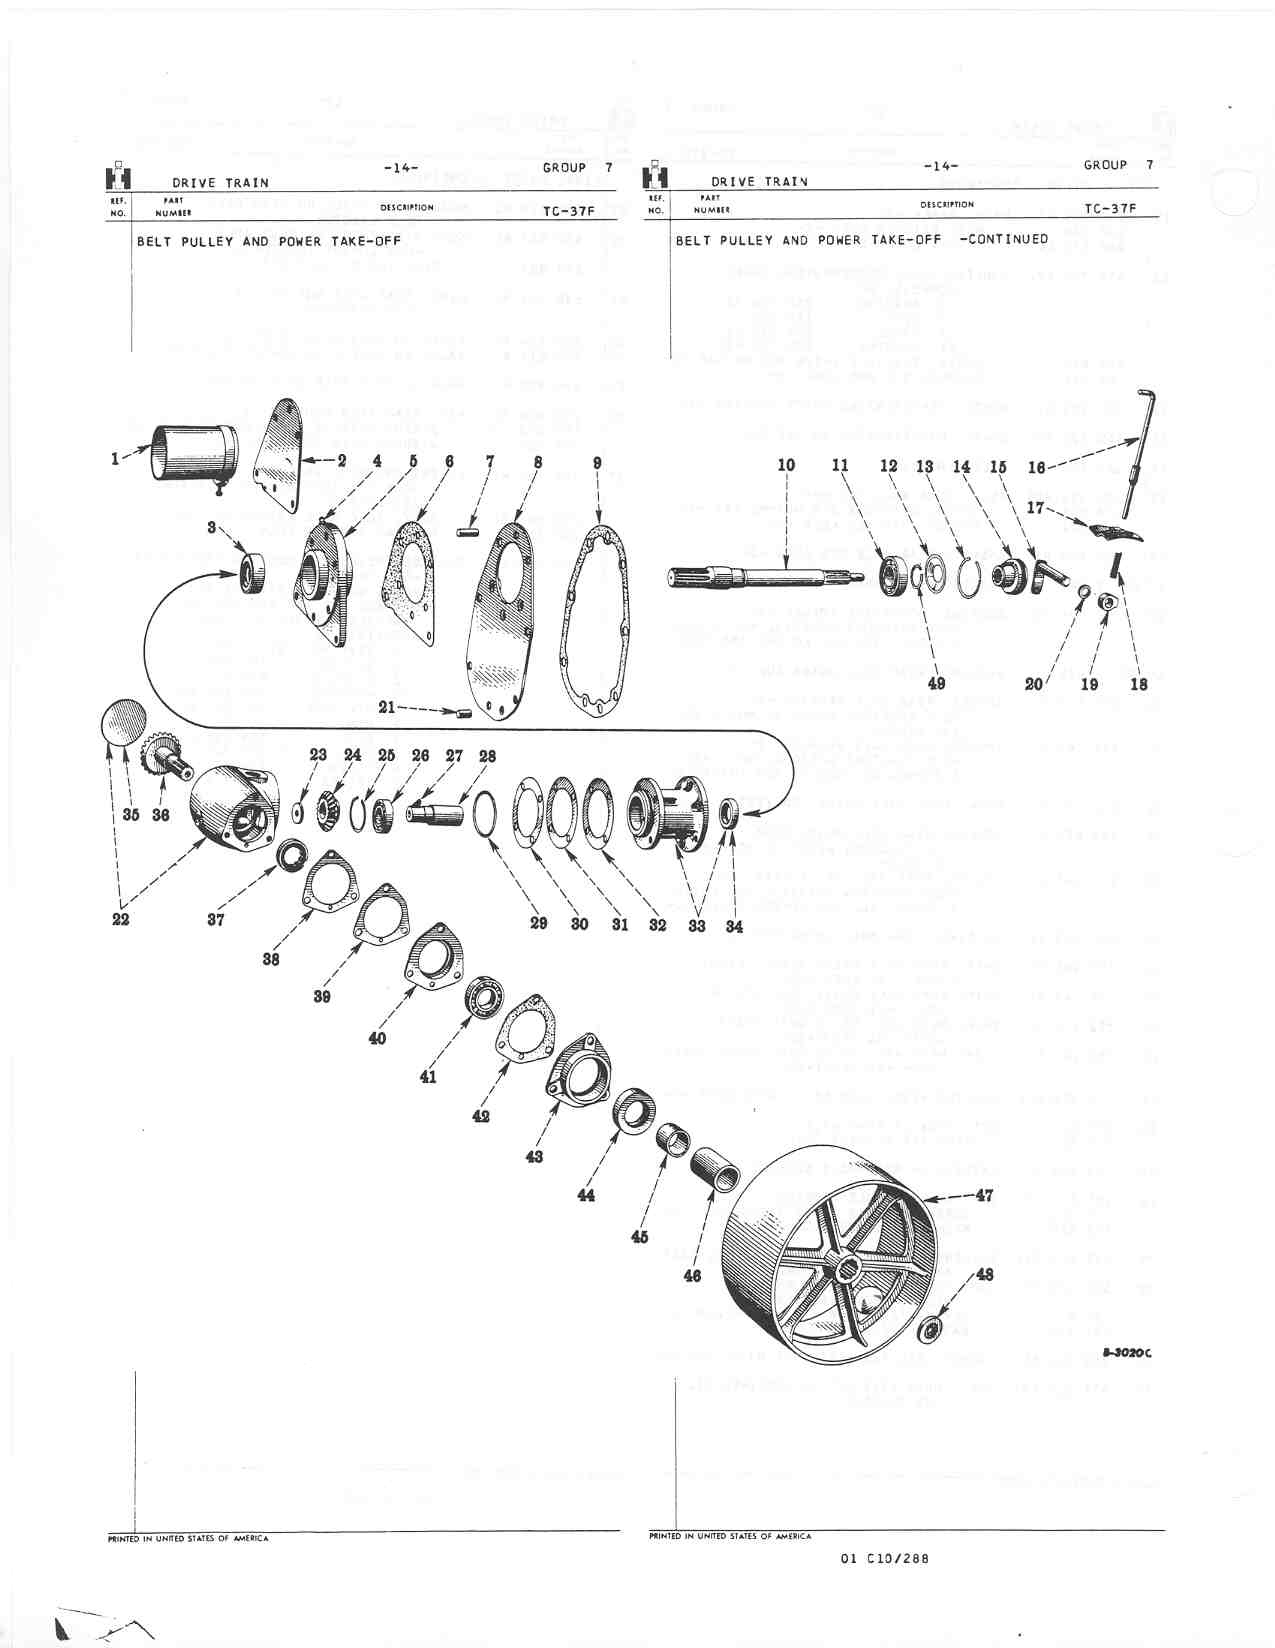 Can Farmall Cub Tractor parts diagrams be viewed online